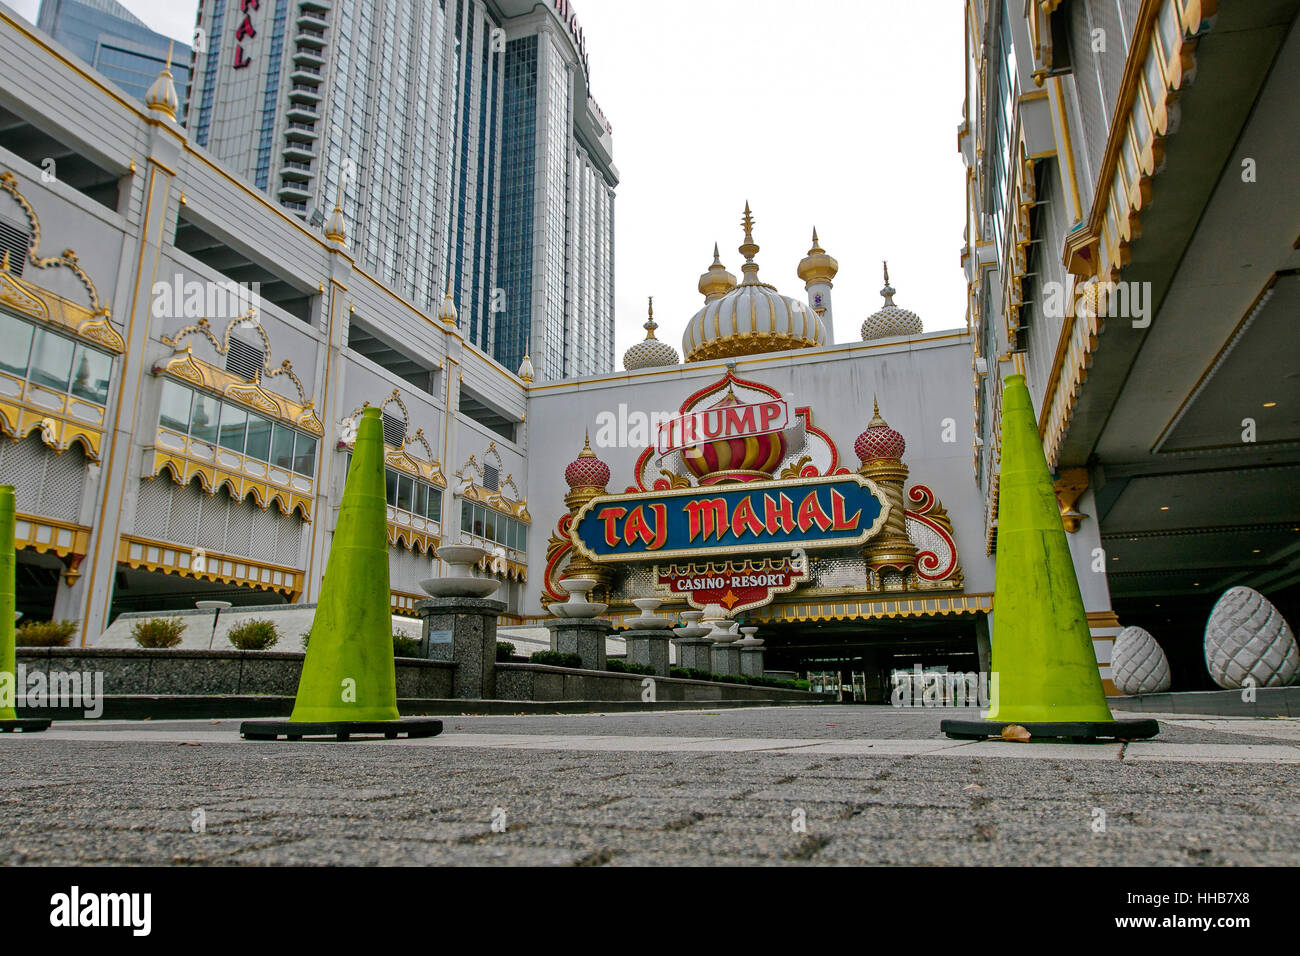 the-closed-out-trump-taj-mahal-resort-an